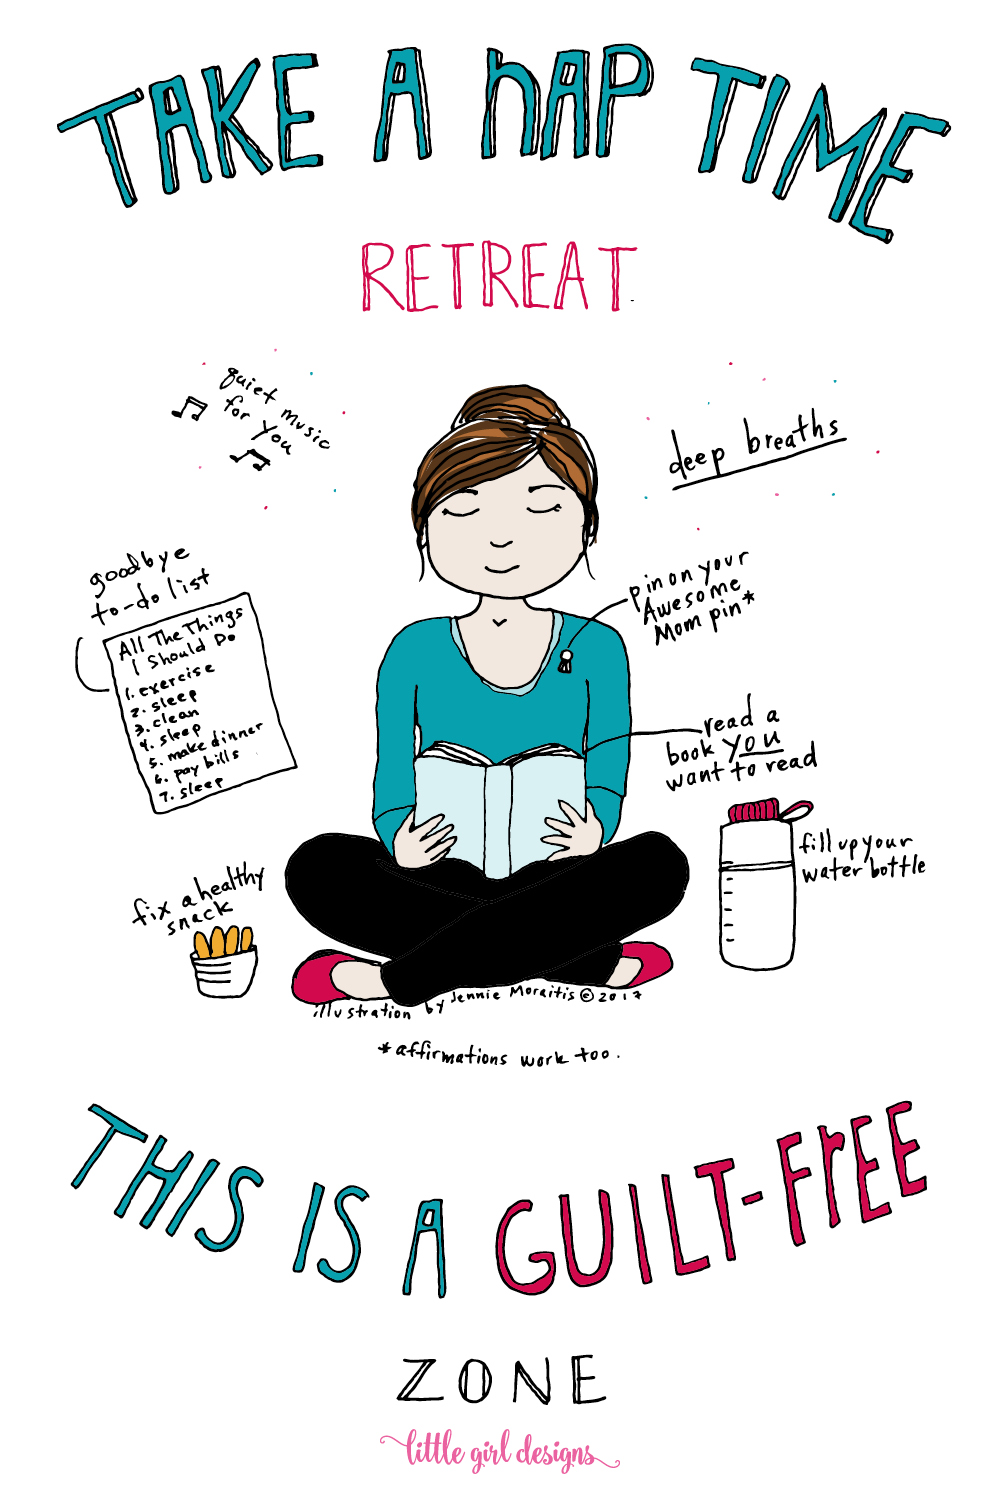 A nap time retreat is just what I NEED! Usually I spend the whole time feeling guilty because I have so many things to do. This post really encouraged me to use that time to get re-energized and to rest. LOVE.